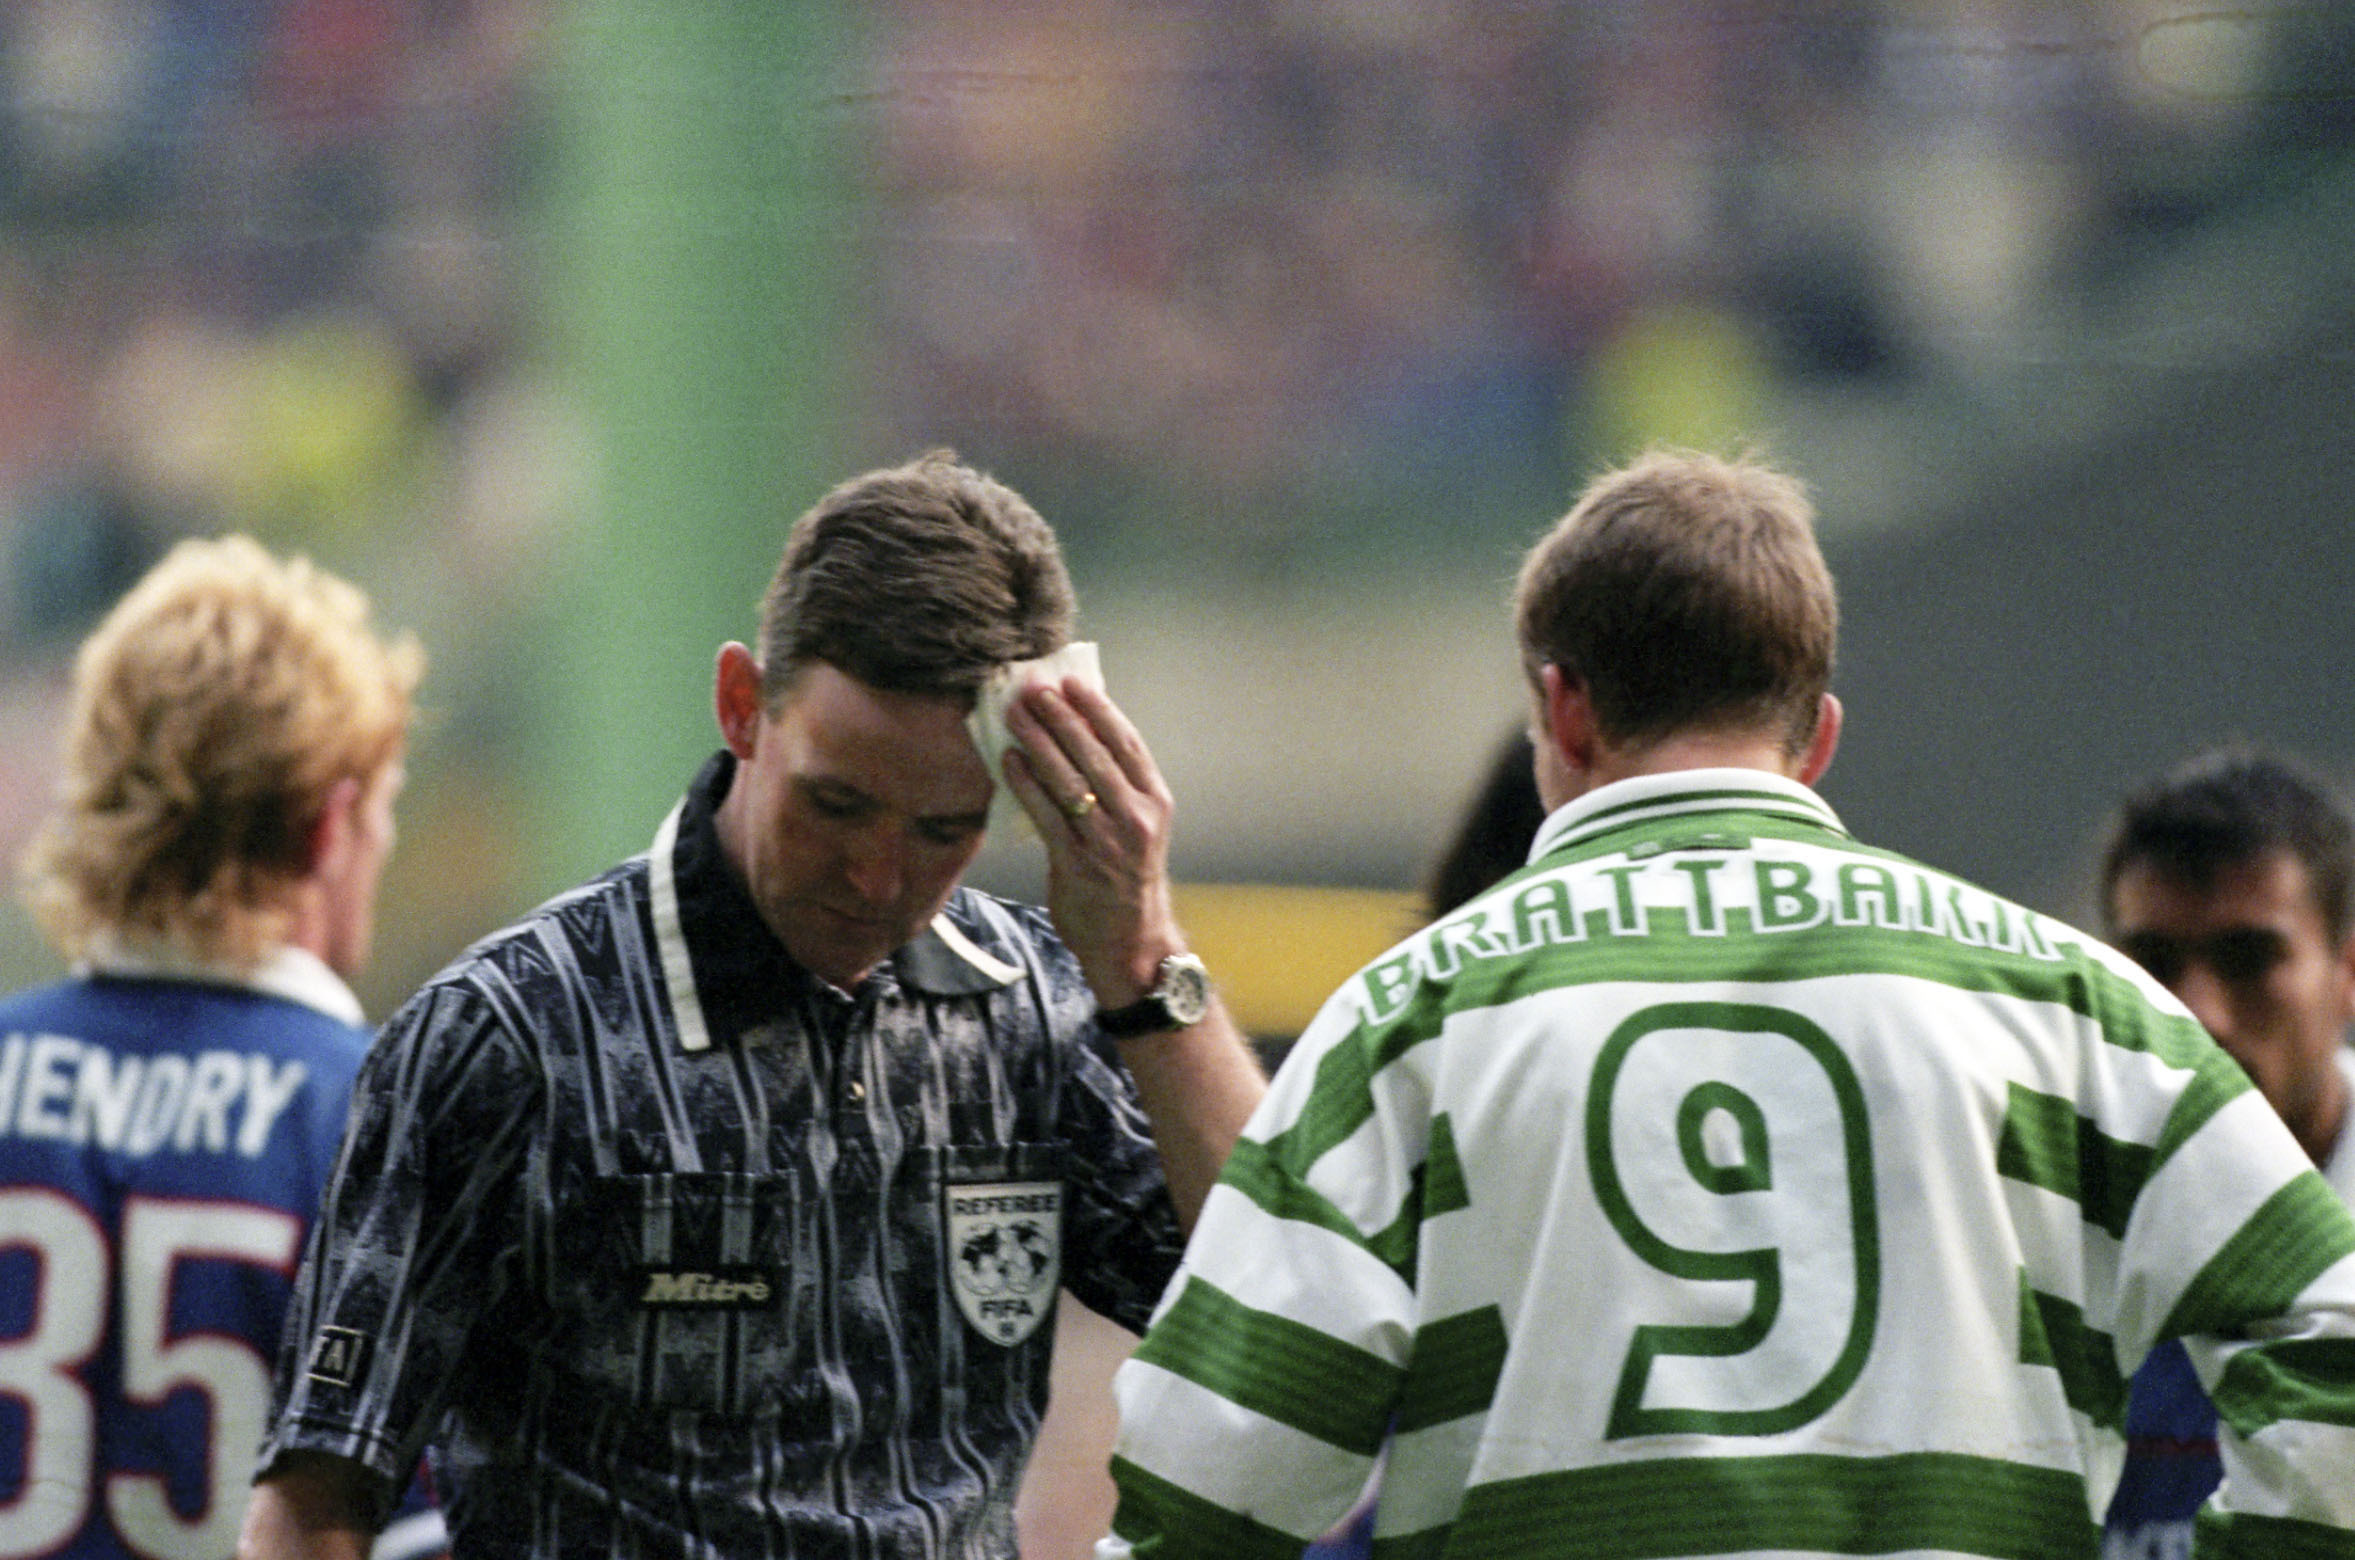 Hugh Dallas wipes blood from his forehead after being struck by a coin in the infamous 1999 shame game